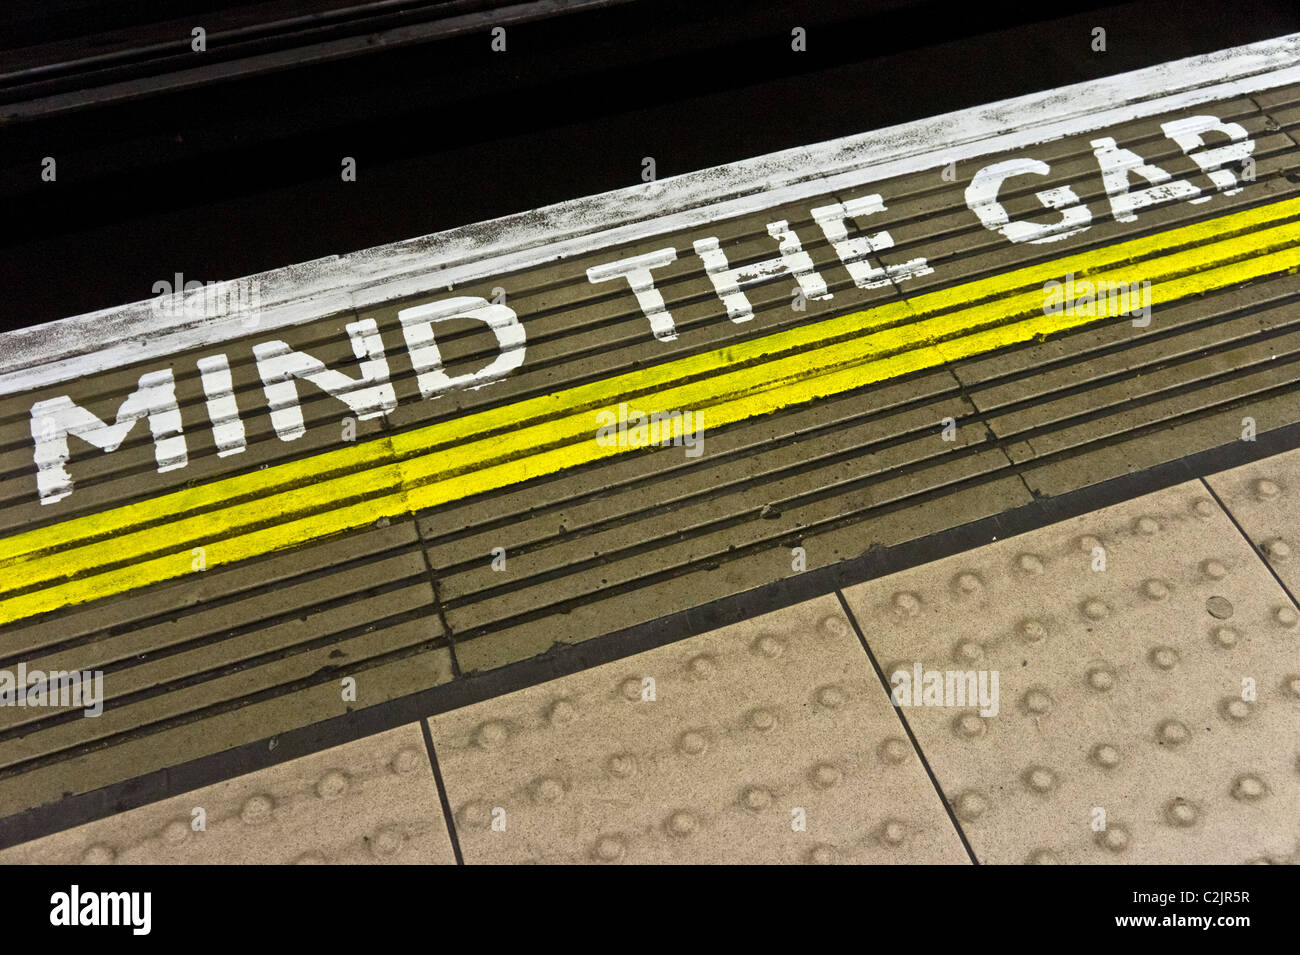 Mind the Gap warning on the edge of a London Underground station's platform, London, England - Stock Image